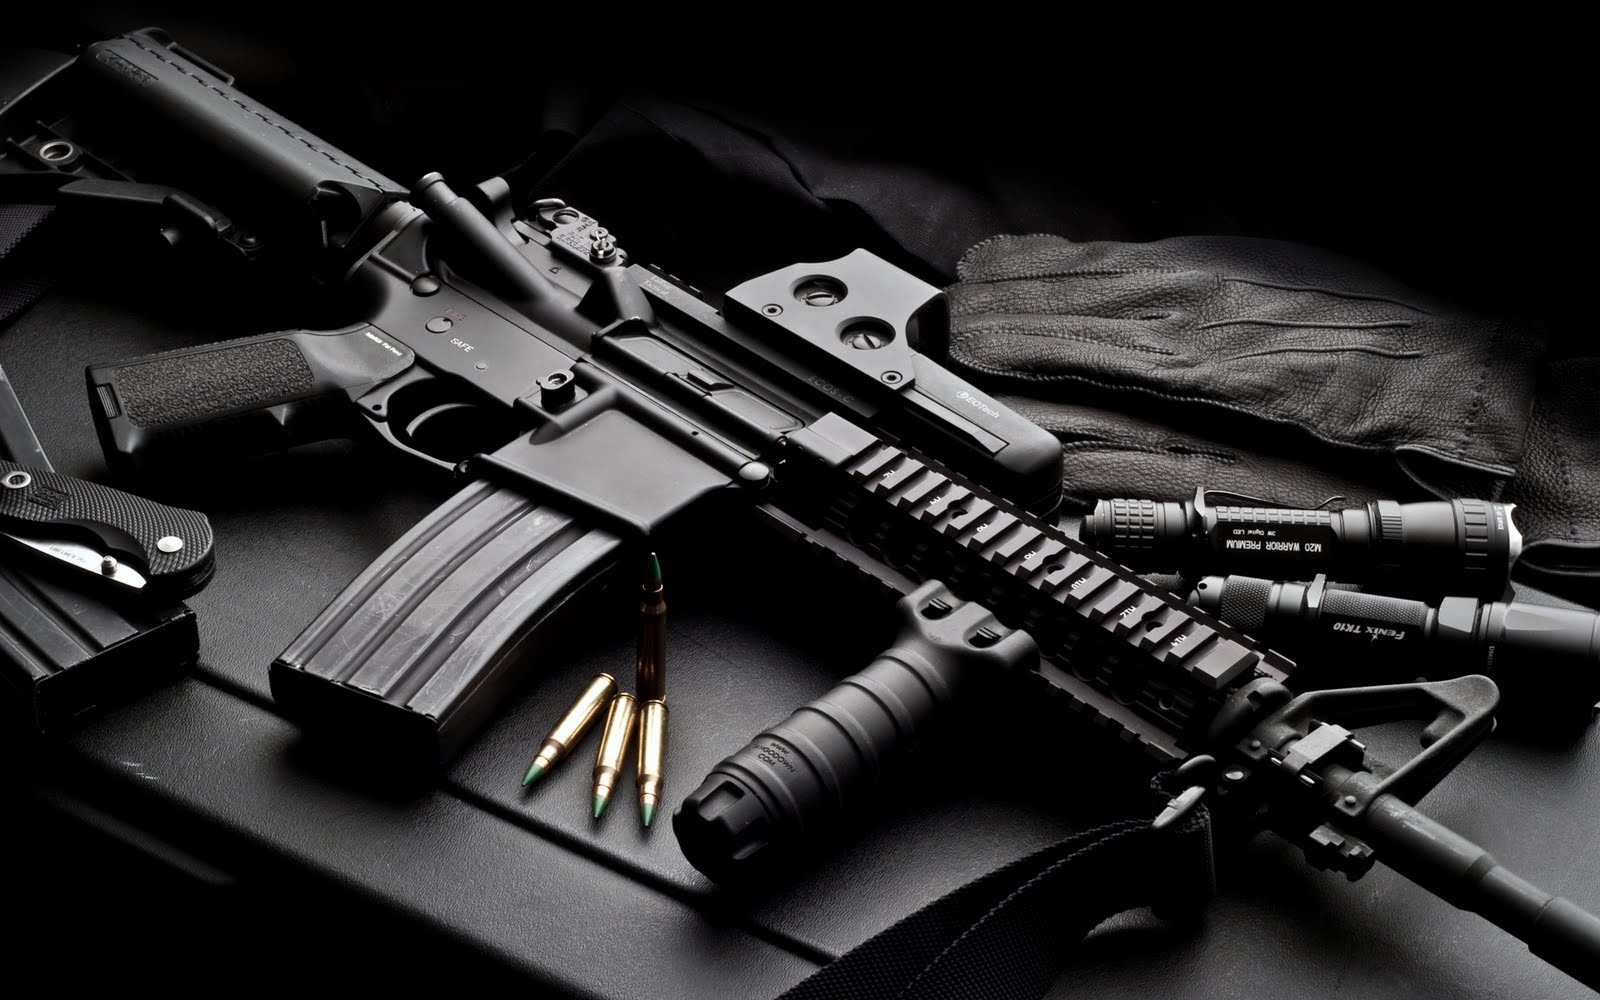 gun wallpaper cool gun wallpaper cool gun wallpaper machine gun ...